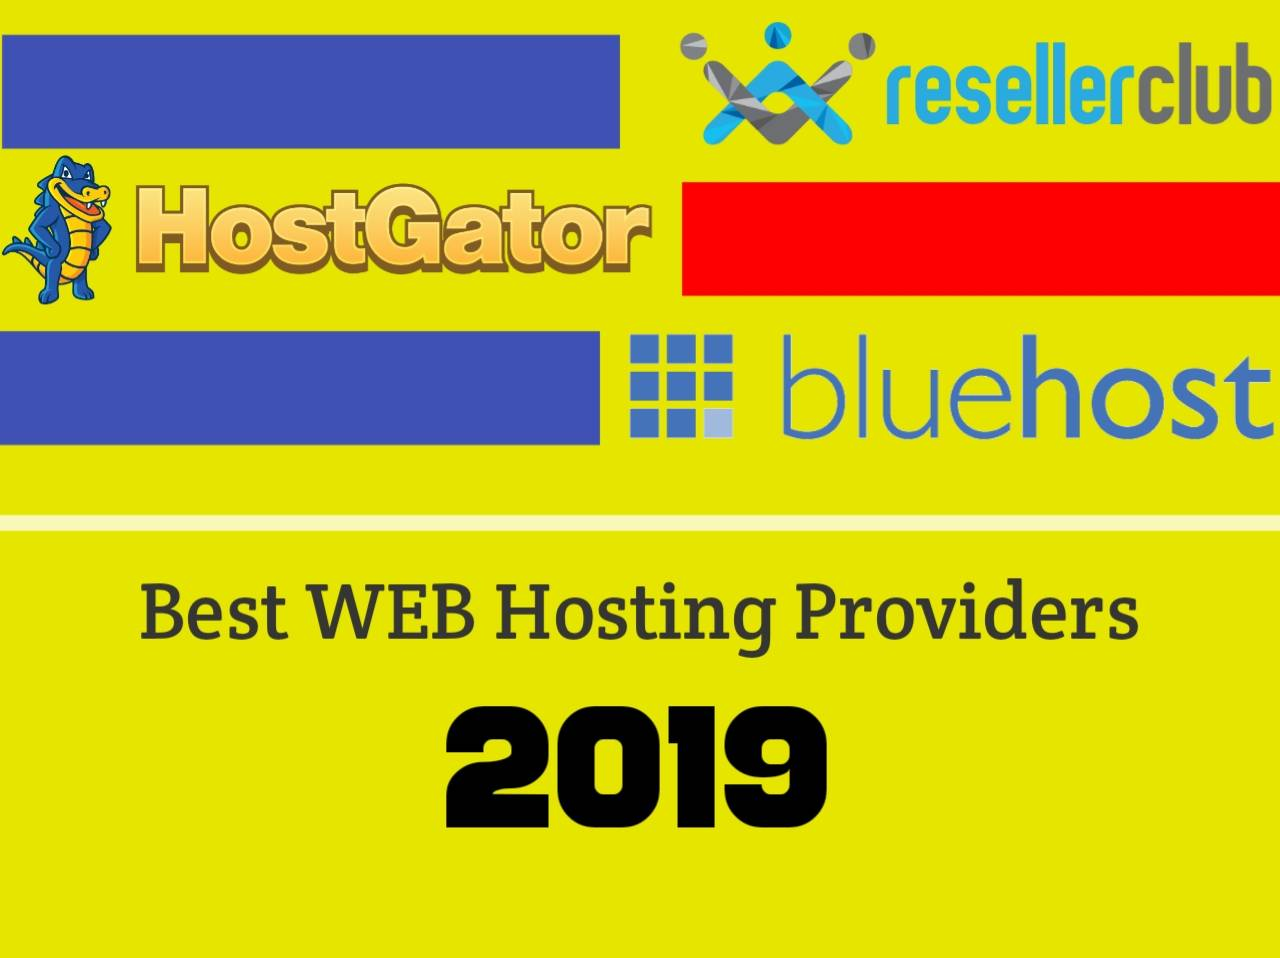 Best Web Hosting Providers in 2019